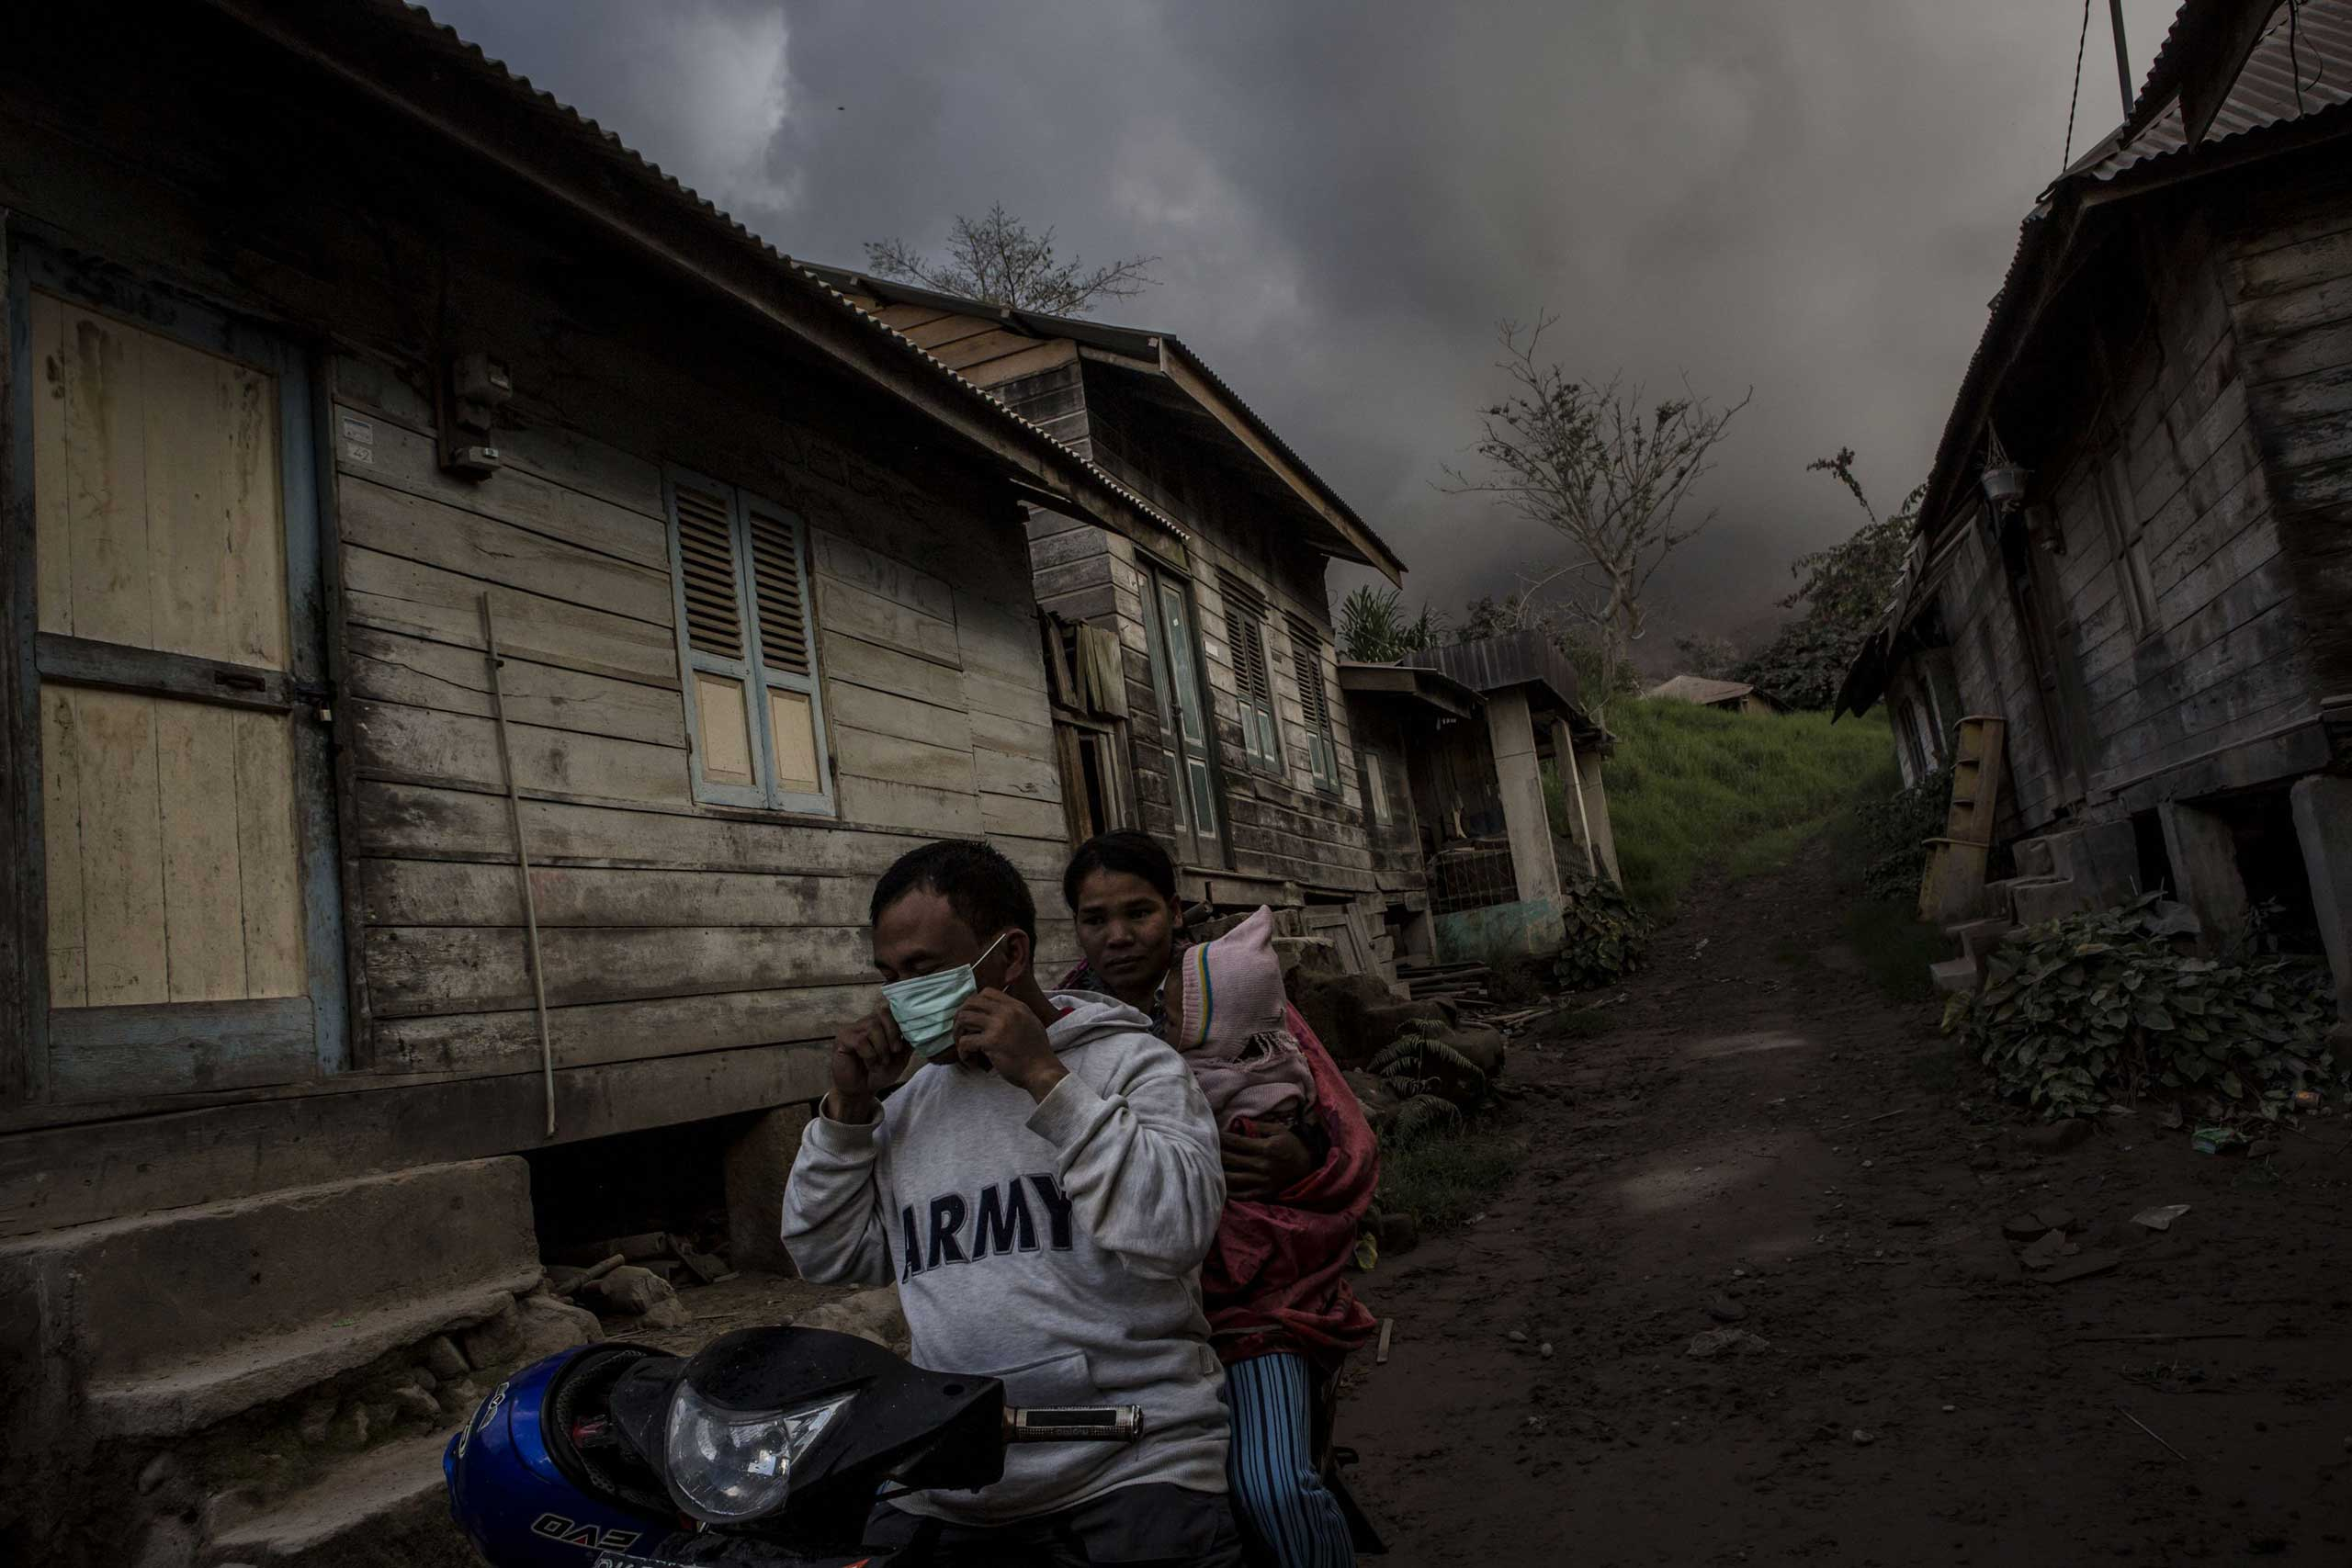 People on a motor cycle place masks on their faces as they flee their home to be evacuated to a temporary shelter in Sukanalu village, North Sumatra, Indonesia on June 16, 2015.